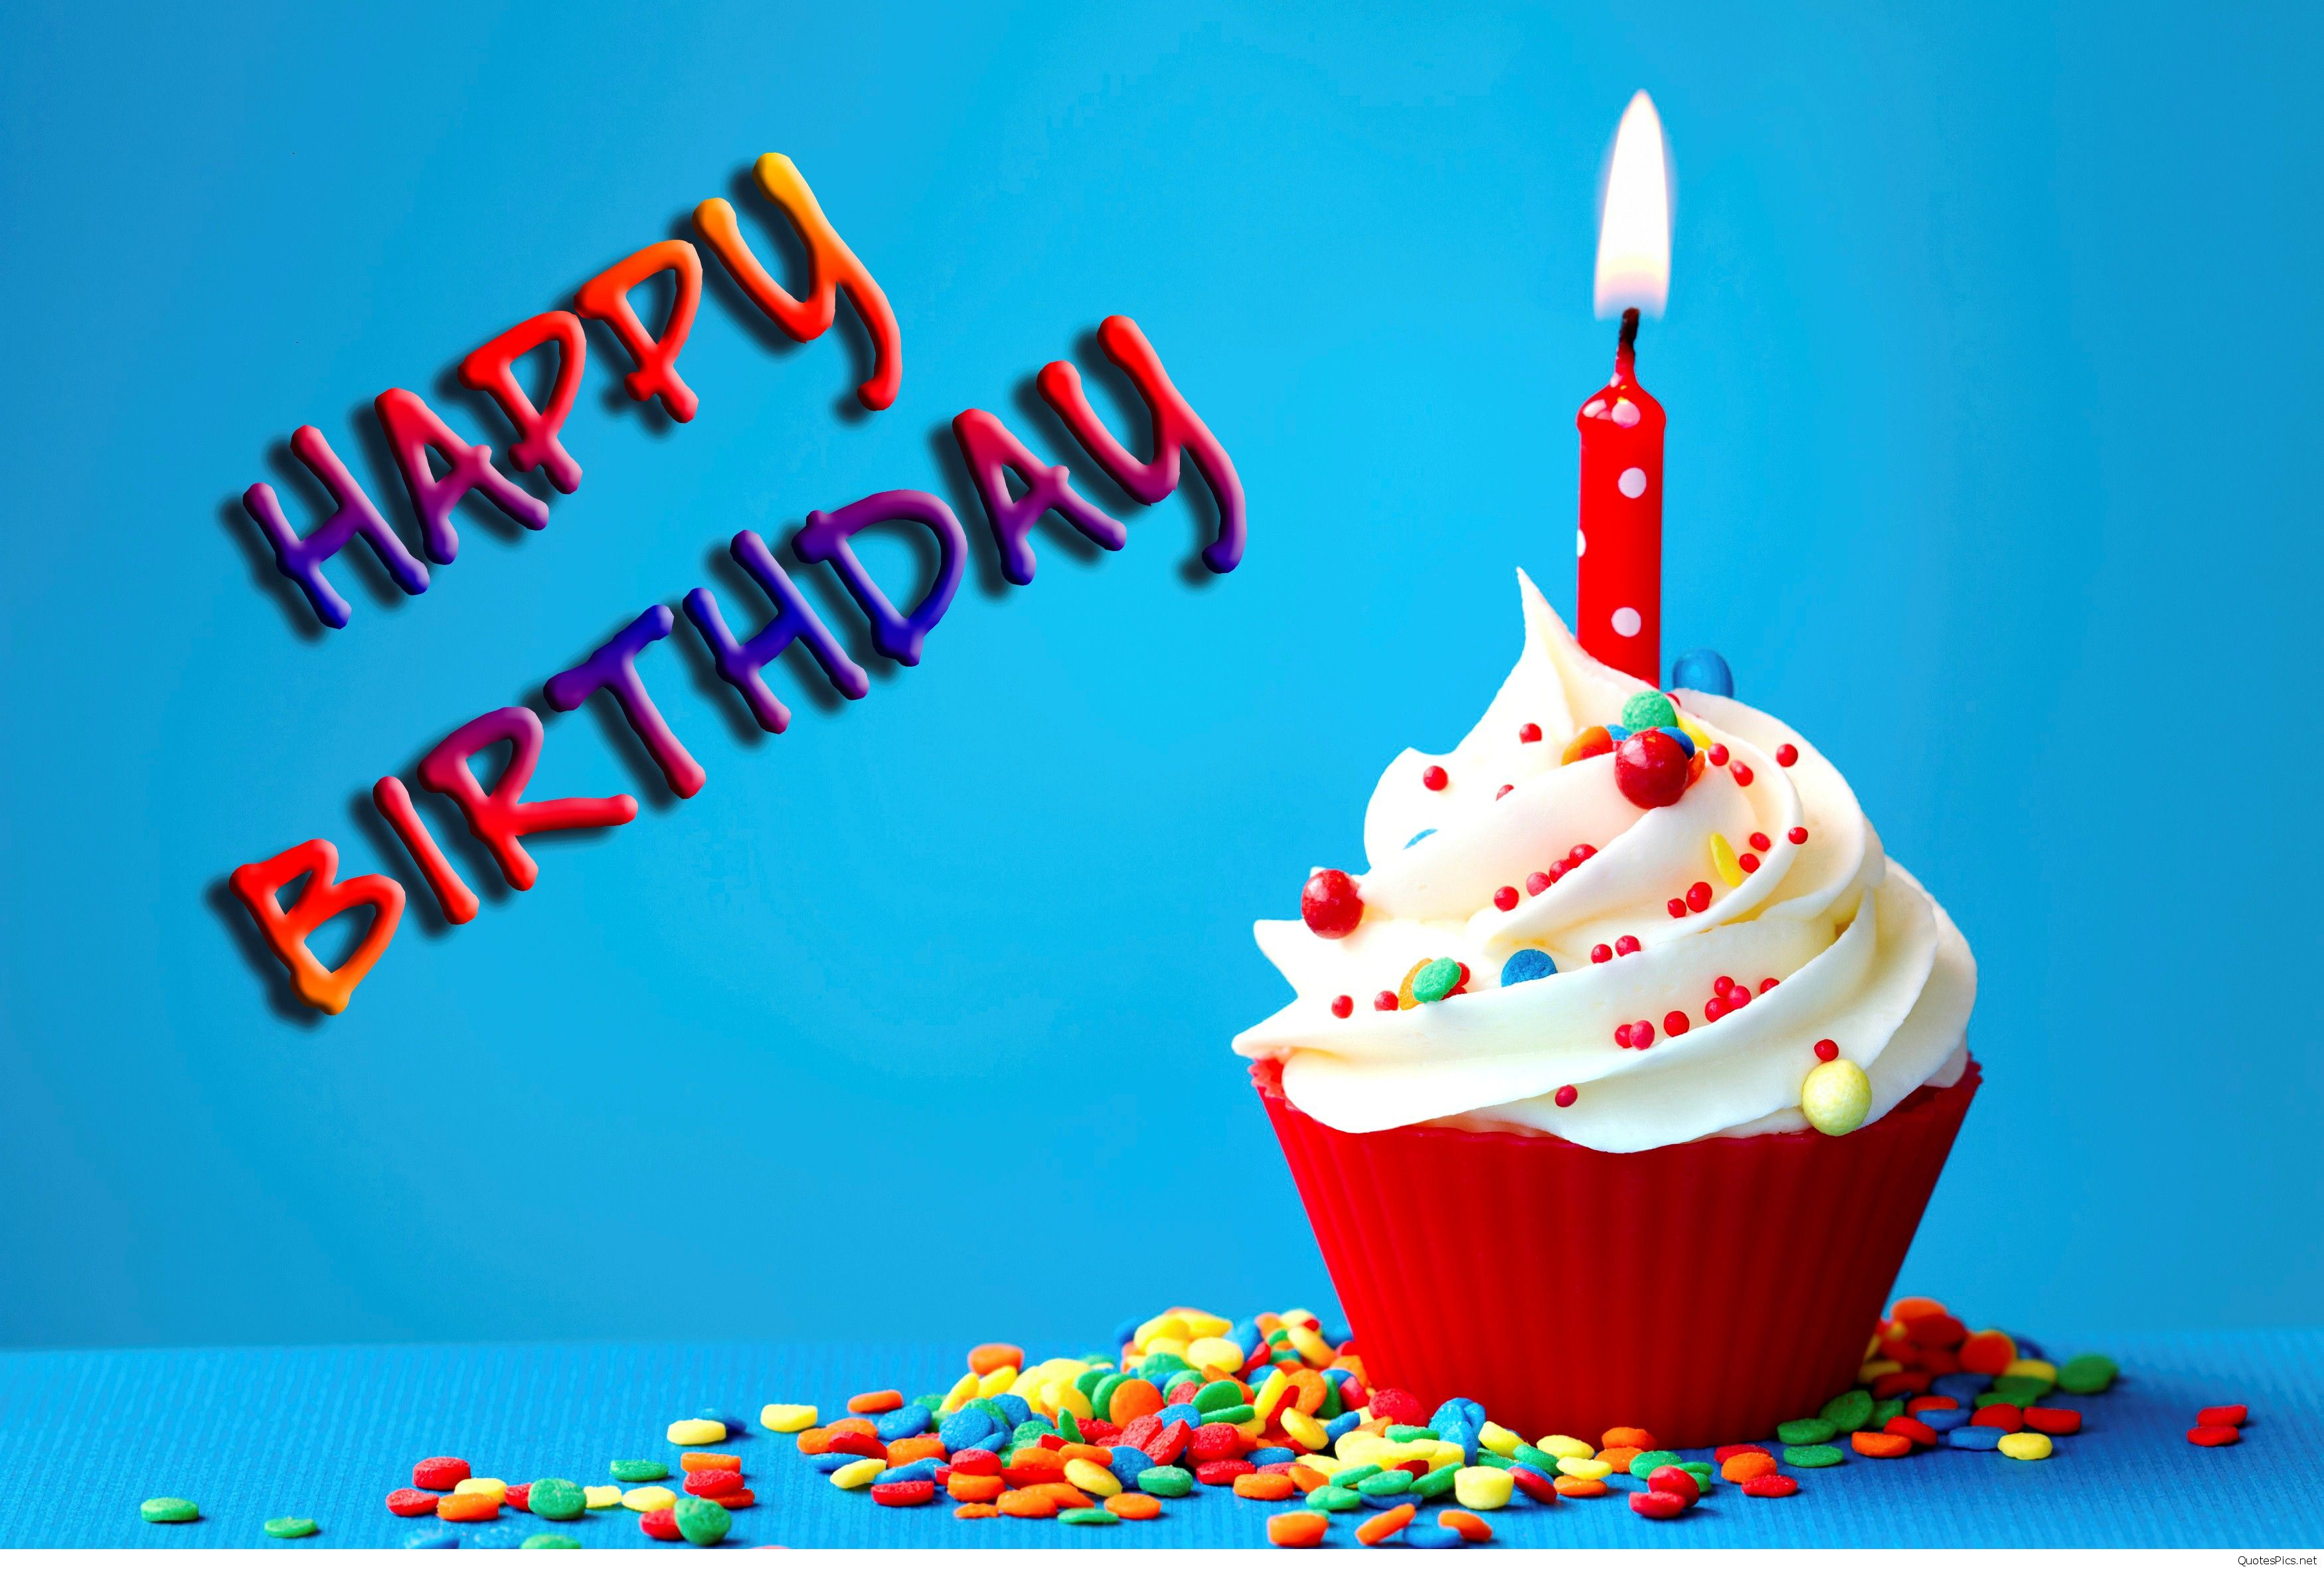 happy birthday wishes hd ; Amazing_Birthday_Wish_with_Cake_and_Candle_Wallpaper